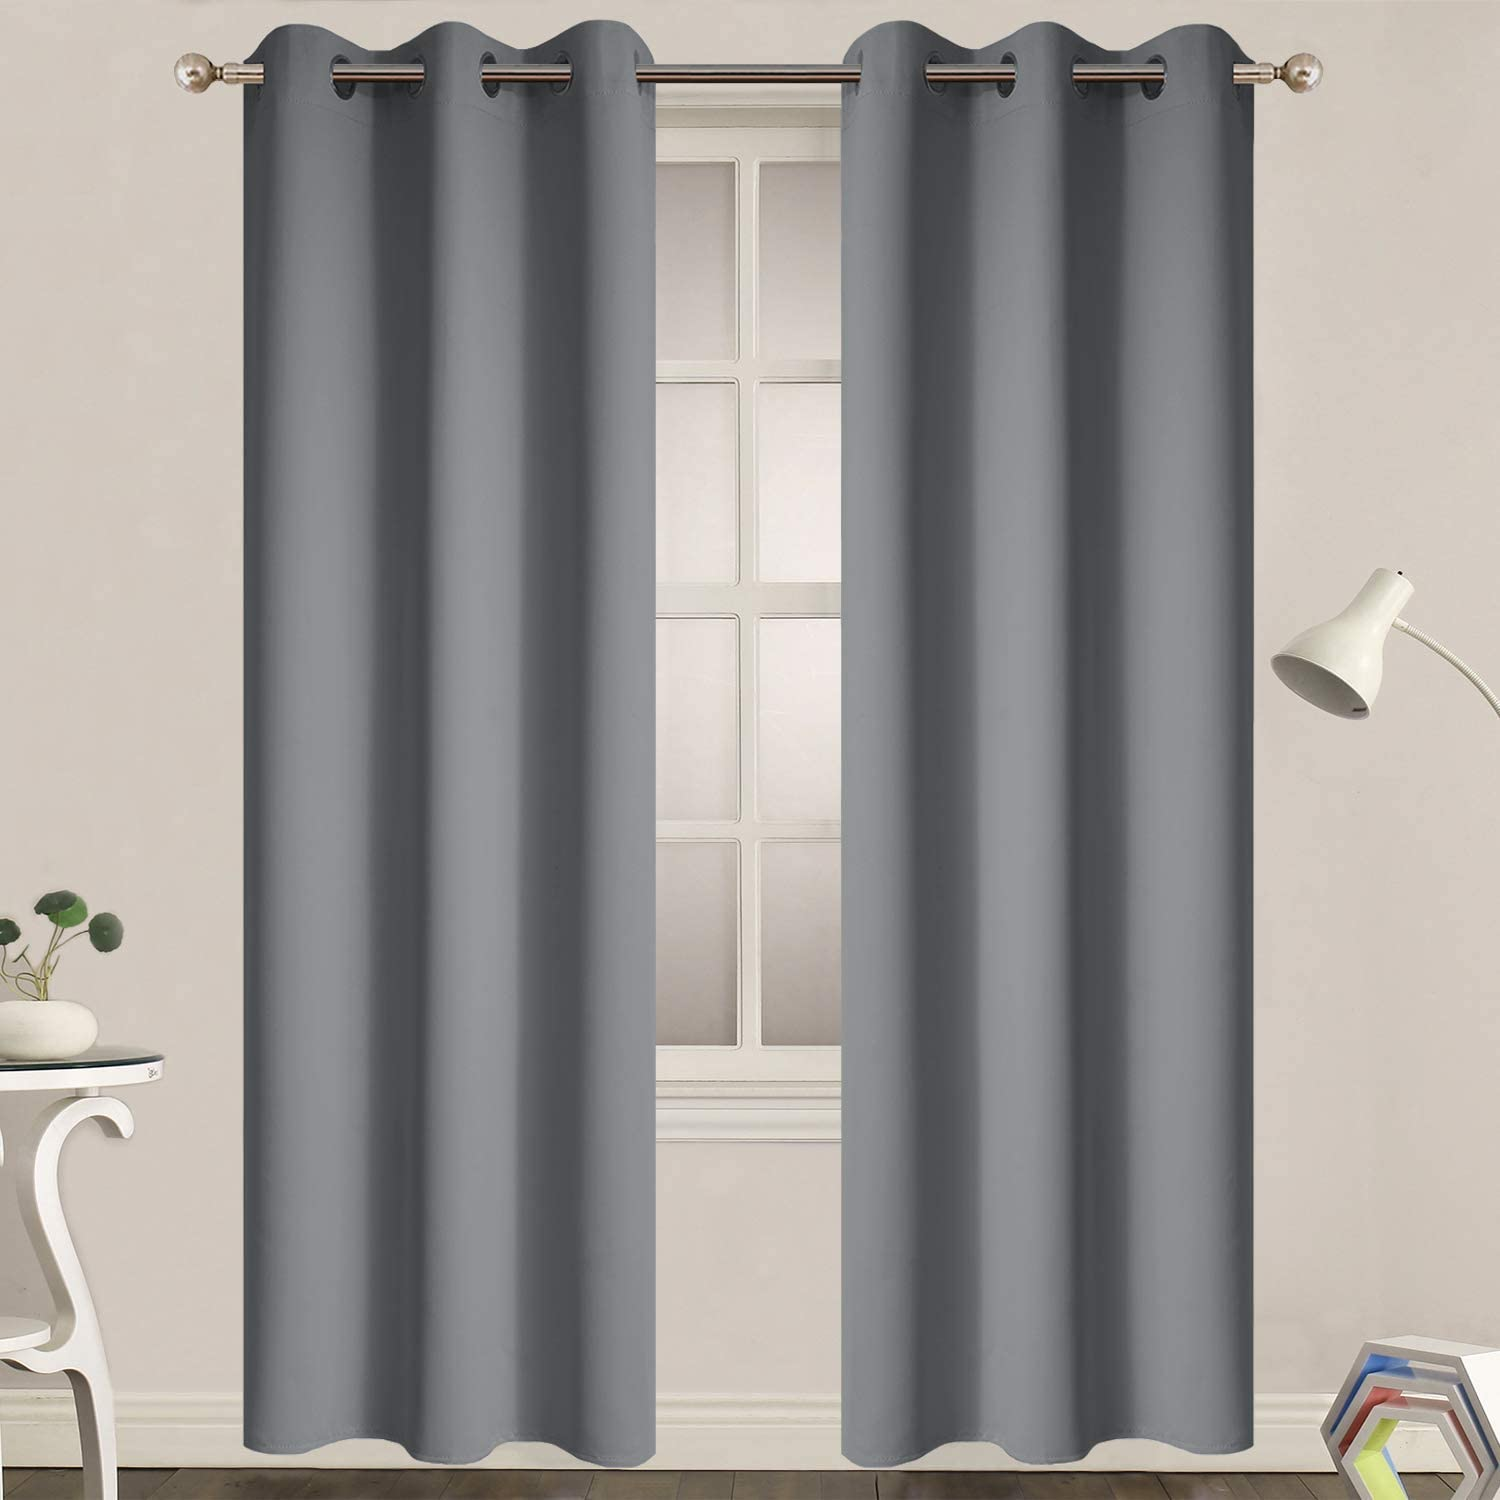 Yakamok Blackout Curtains for Bedroom - Grommet Thermal Insulated Room Darkening Curtains for Living Room, Set of 2 Panels (38 x 84Inch, Grey)